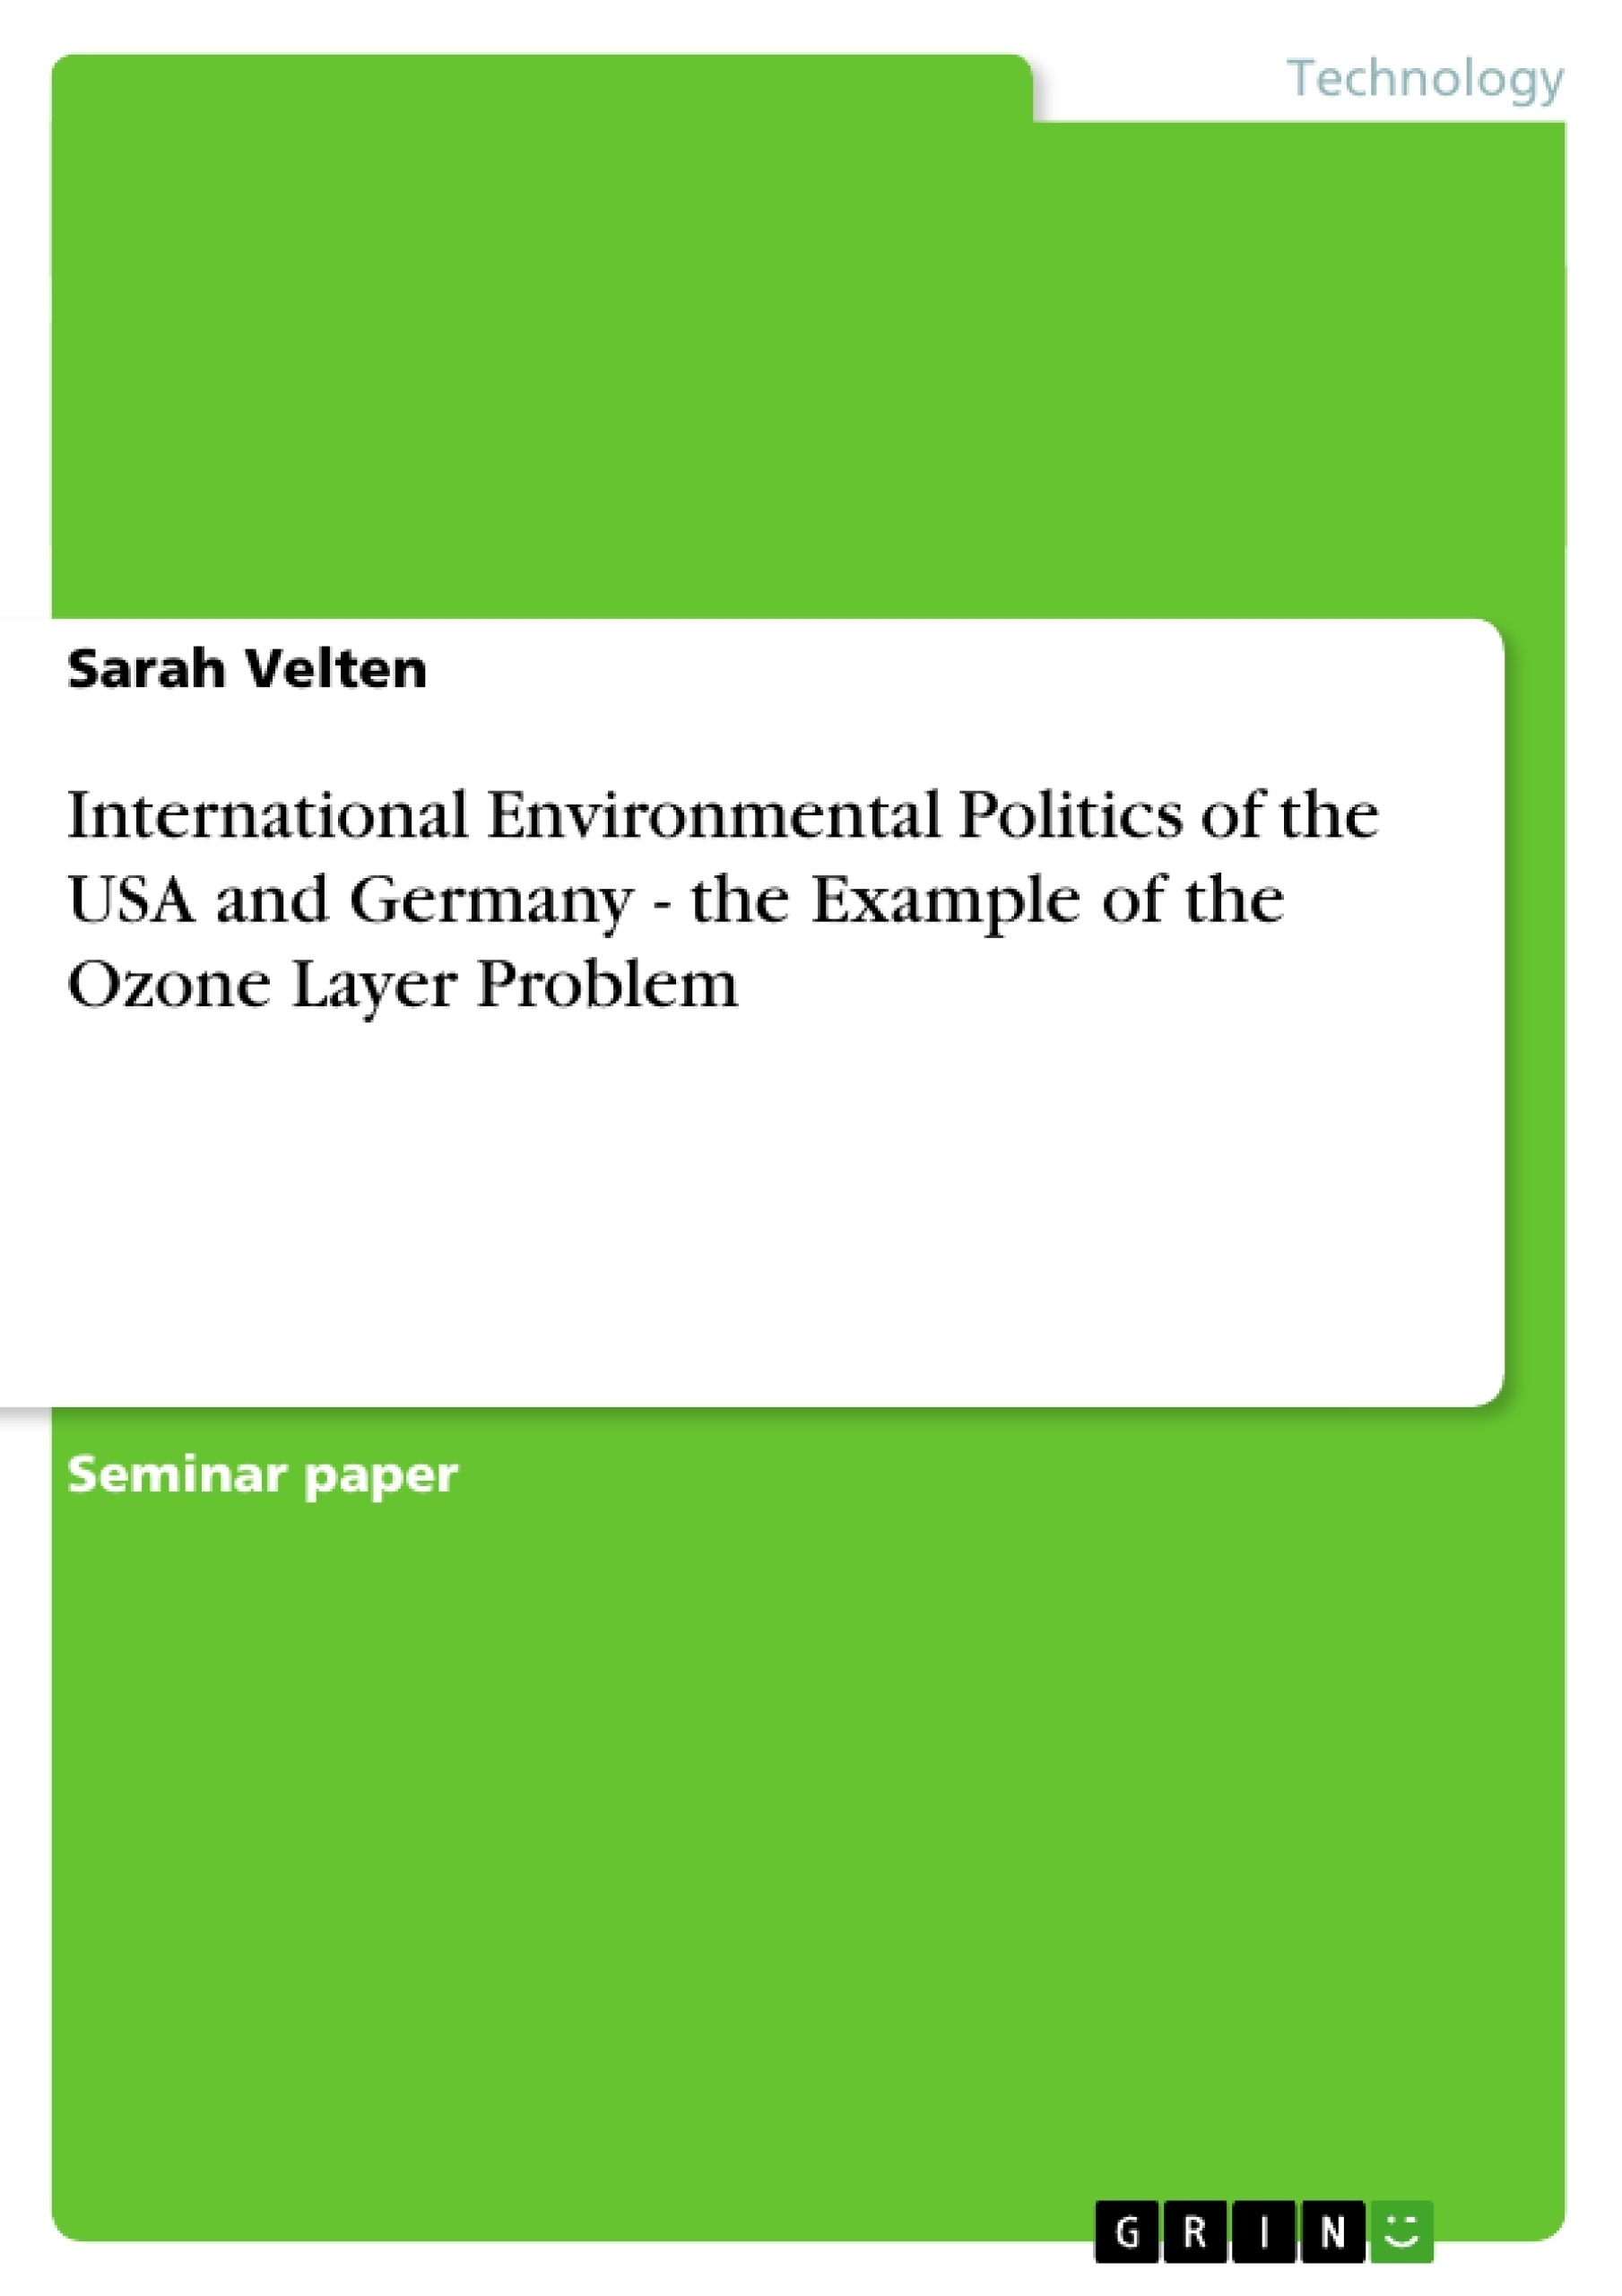 Title: International Environmental Politics of the USA and Germany - the Example of the Ozone Layer Problem